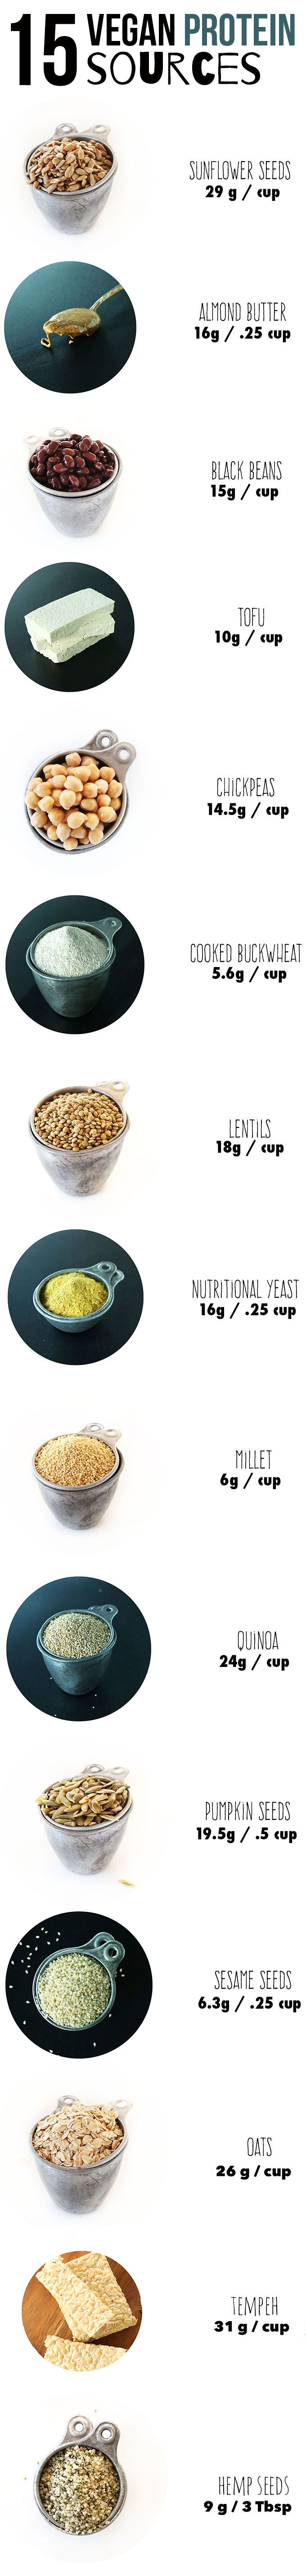 15 CLEAN, Healthy Vegan Protein Sources with Grams Per Serving! #vegan #plantbased